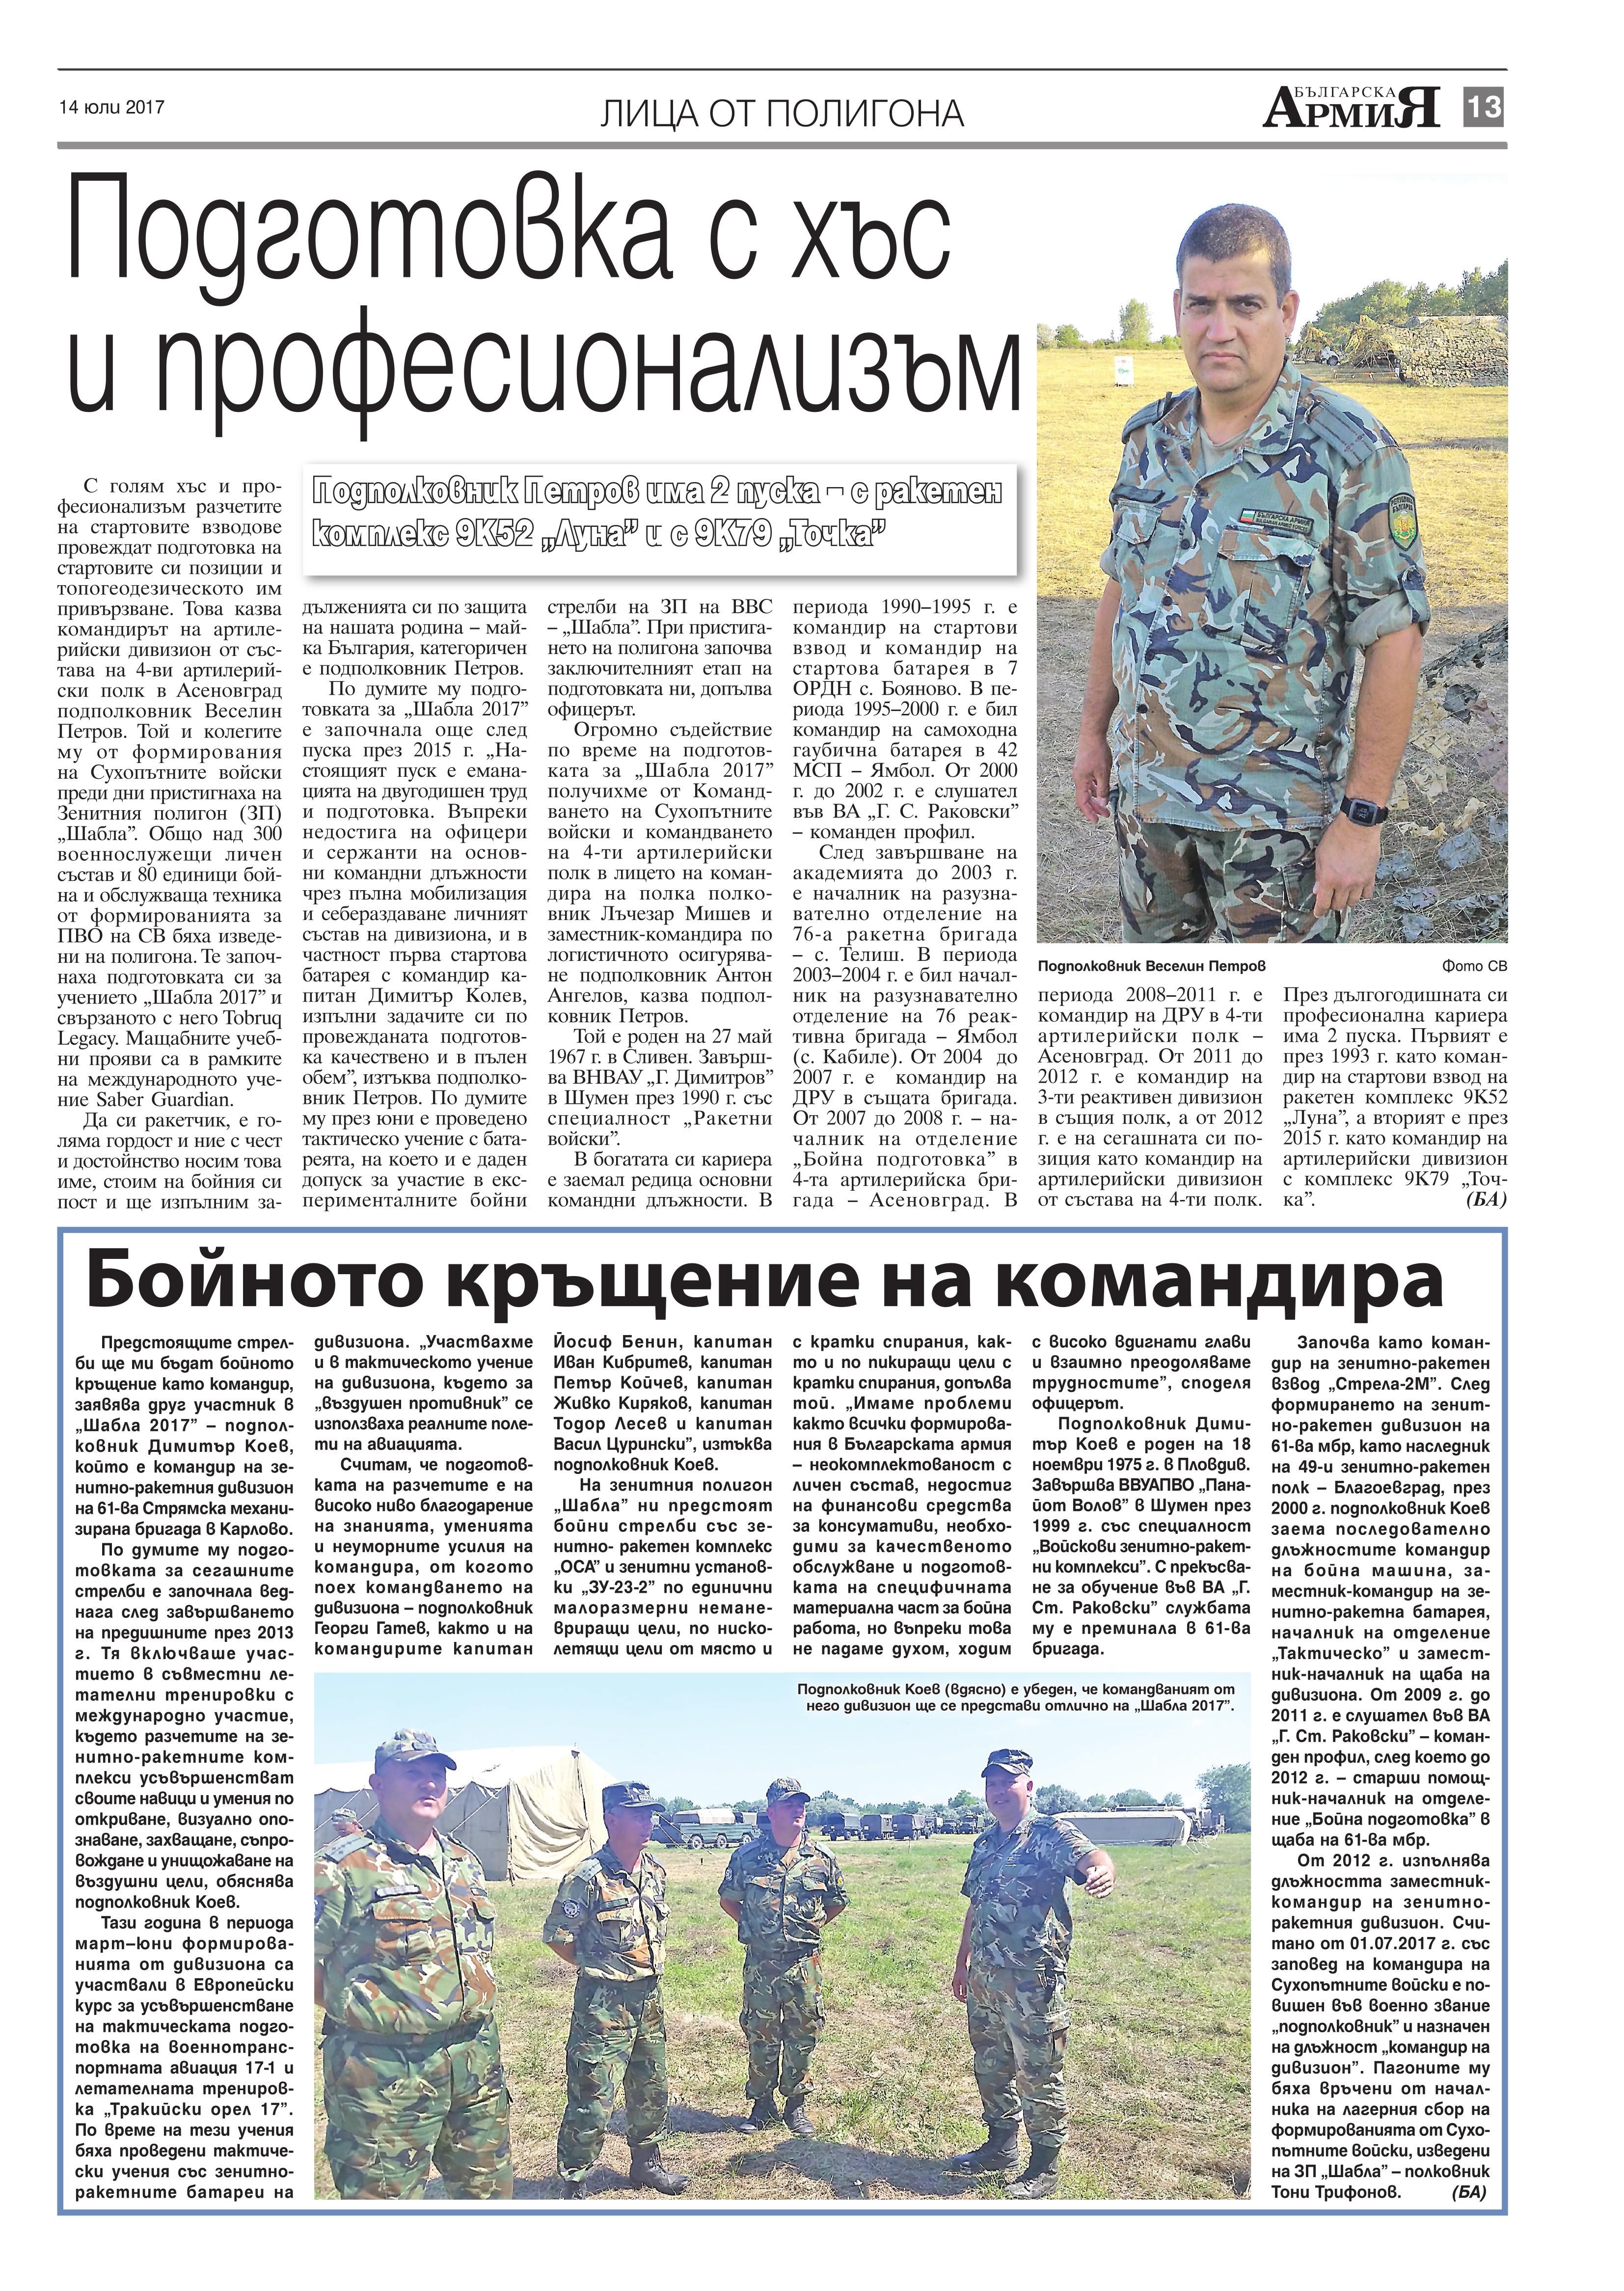 http://armymedia.bg/wp-content/uploads/2015/06/13.page1_-25.jpg